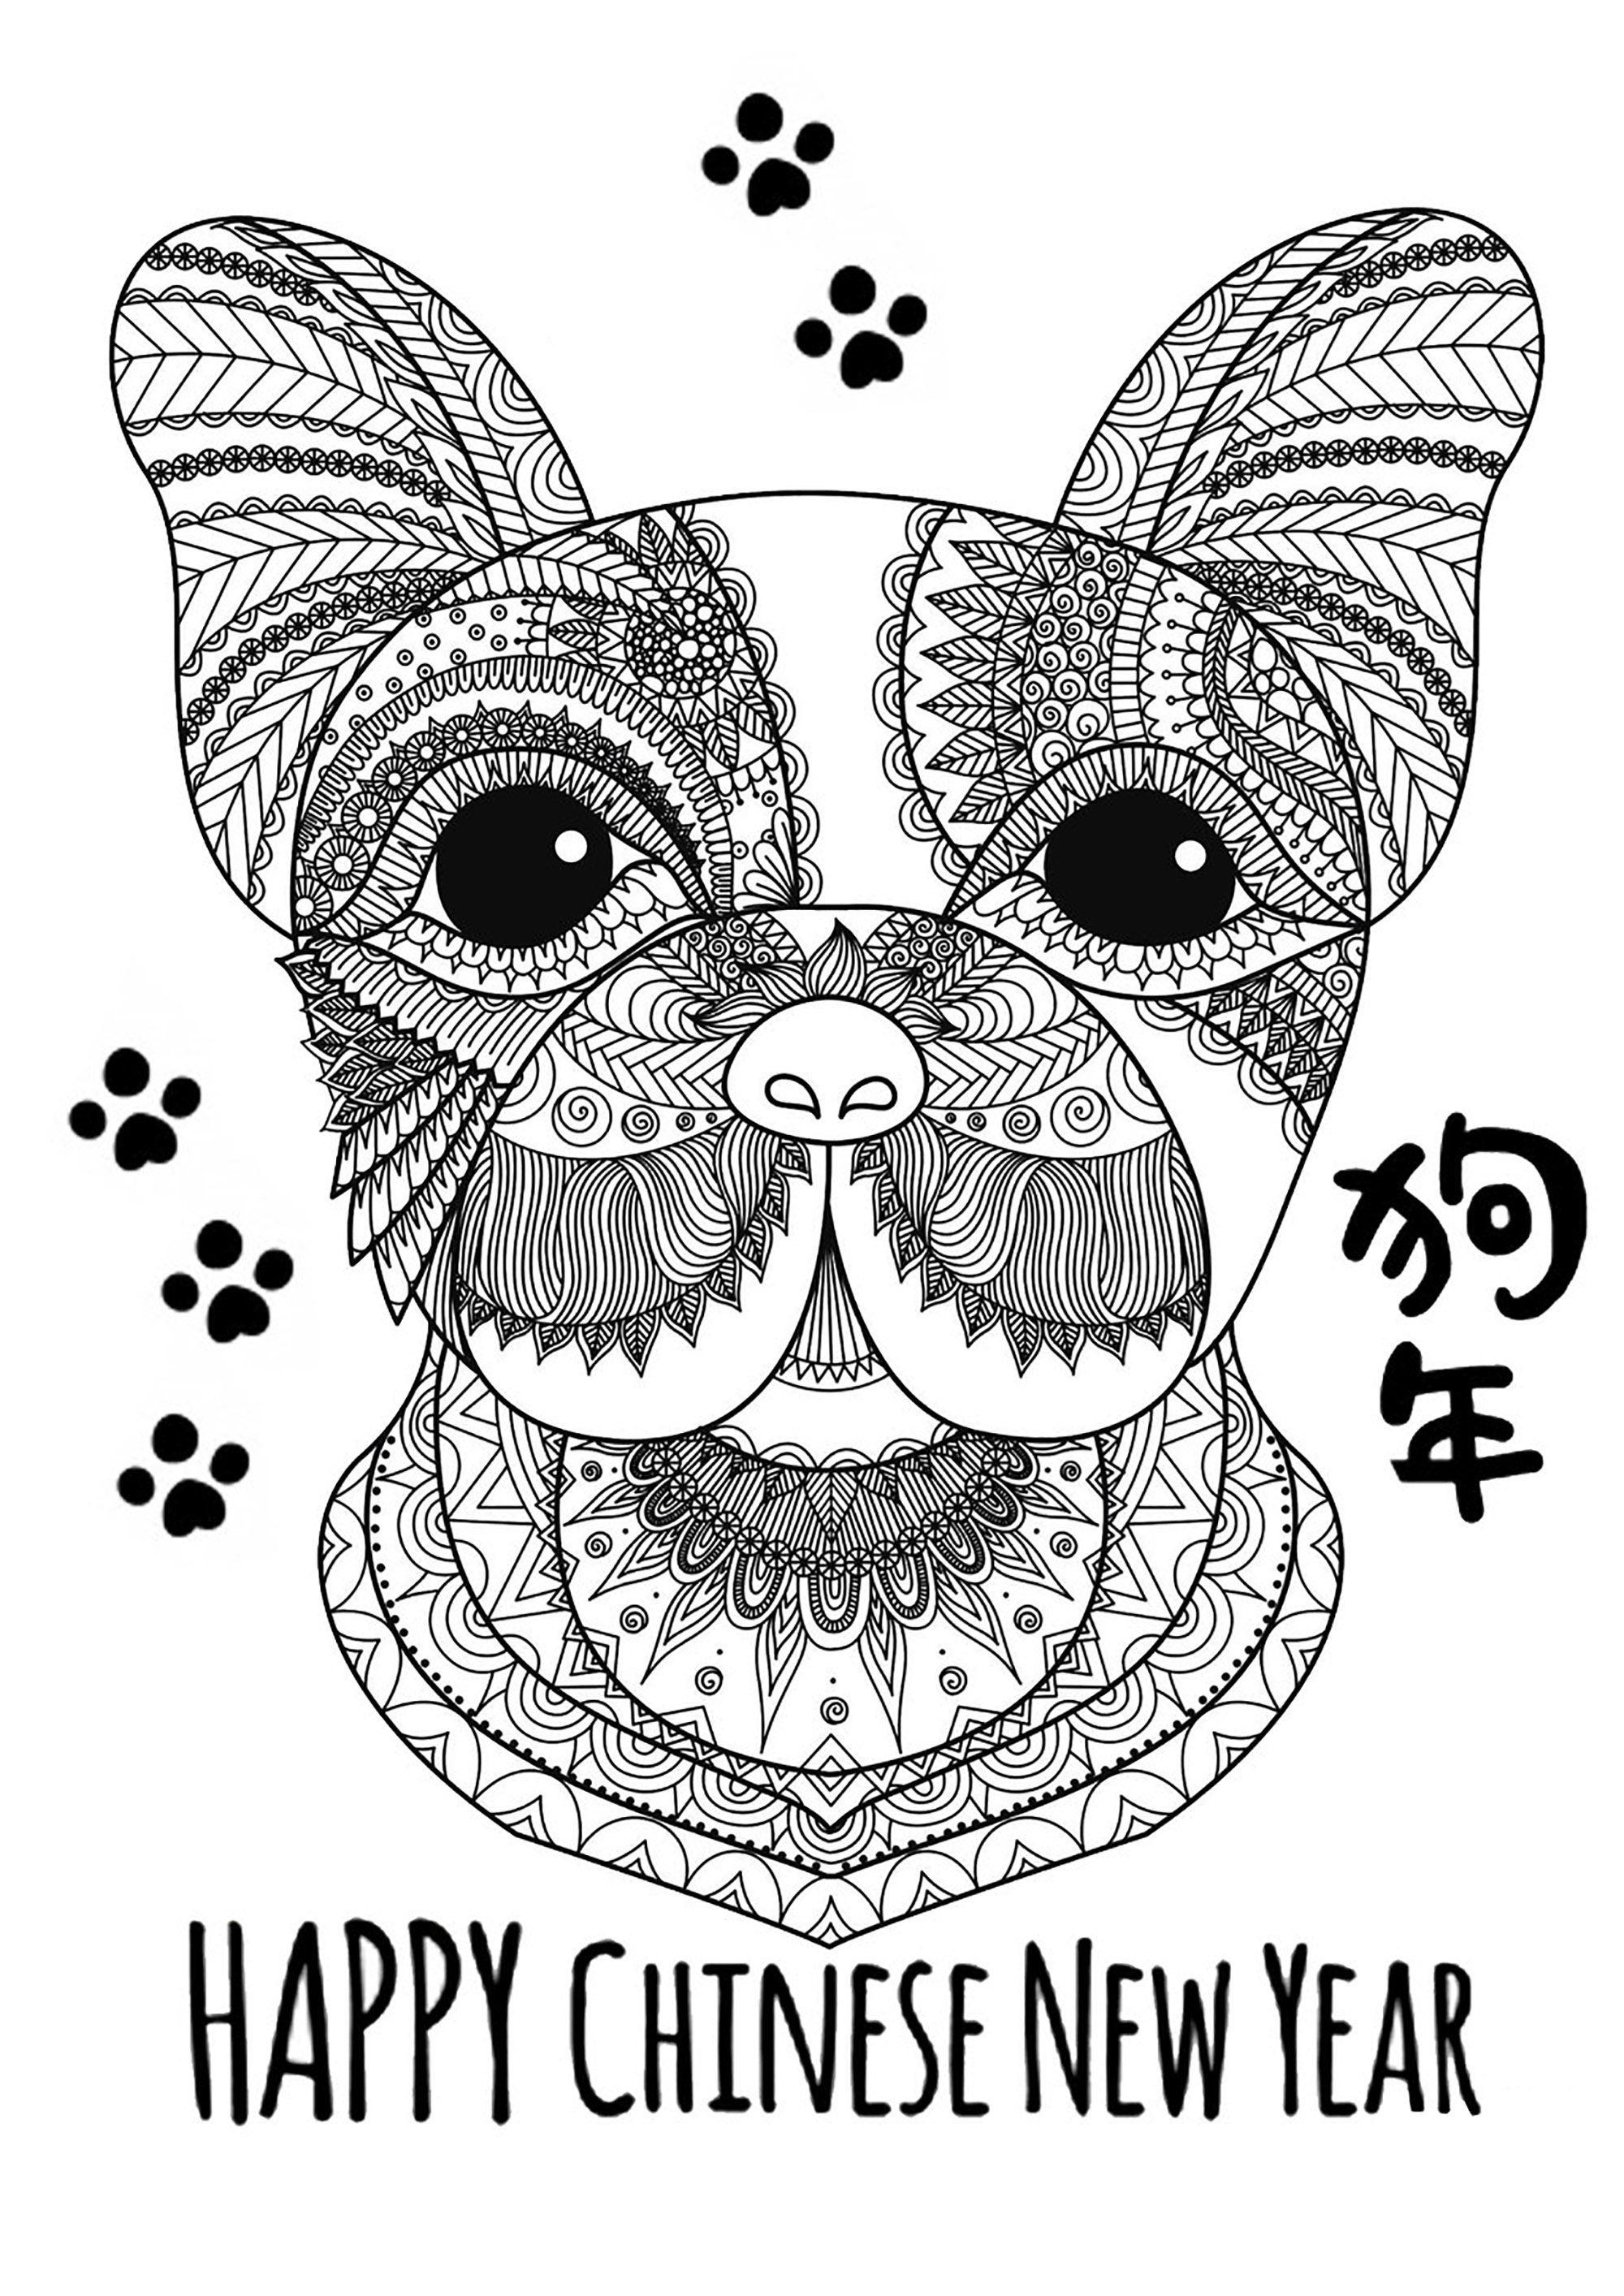 2018 chinese new year Chinese New Year Adult Coloring Pages